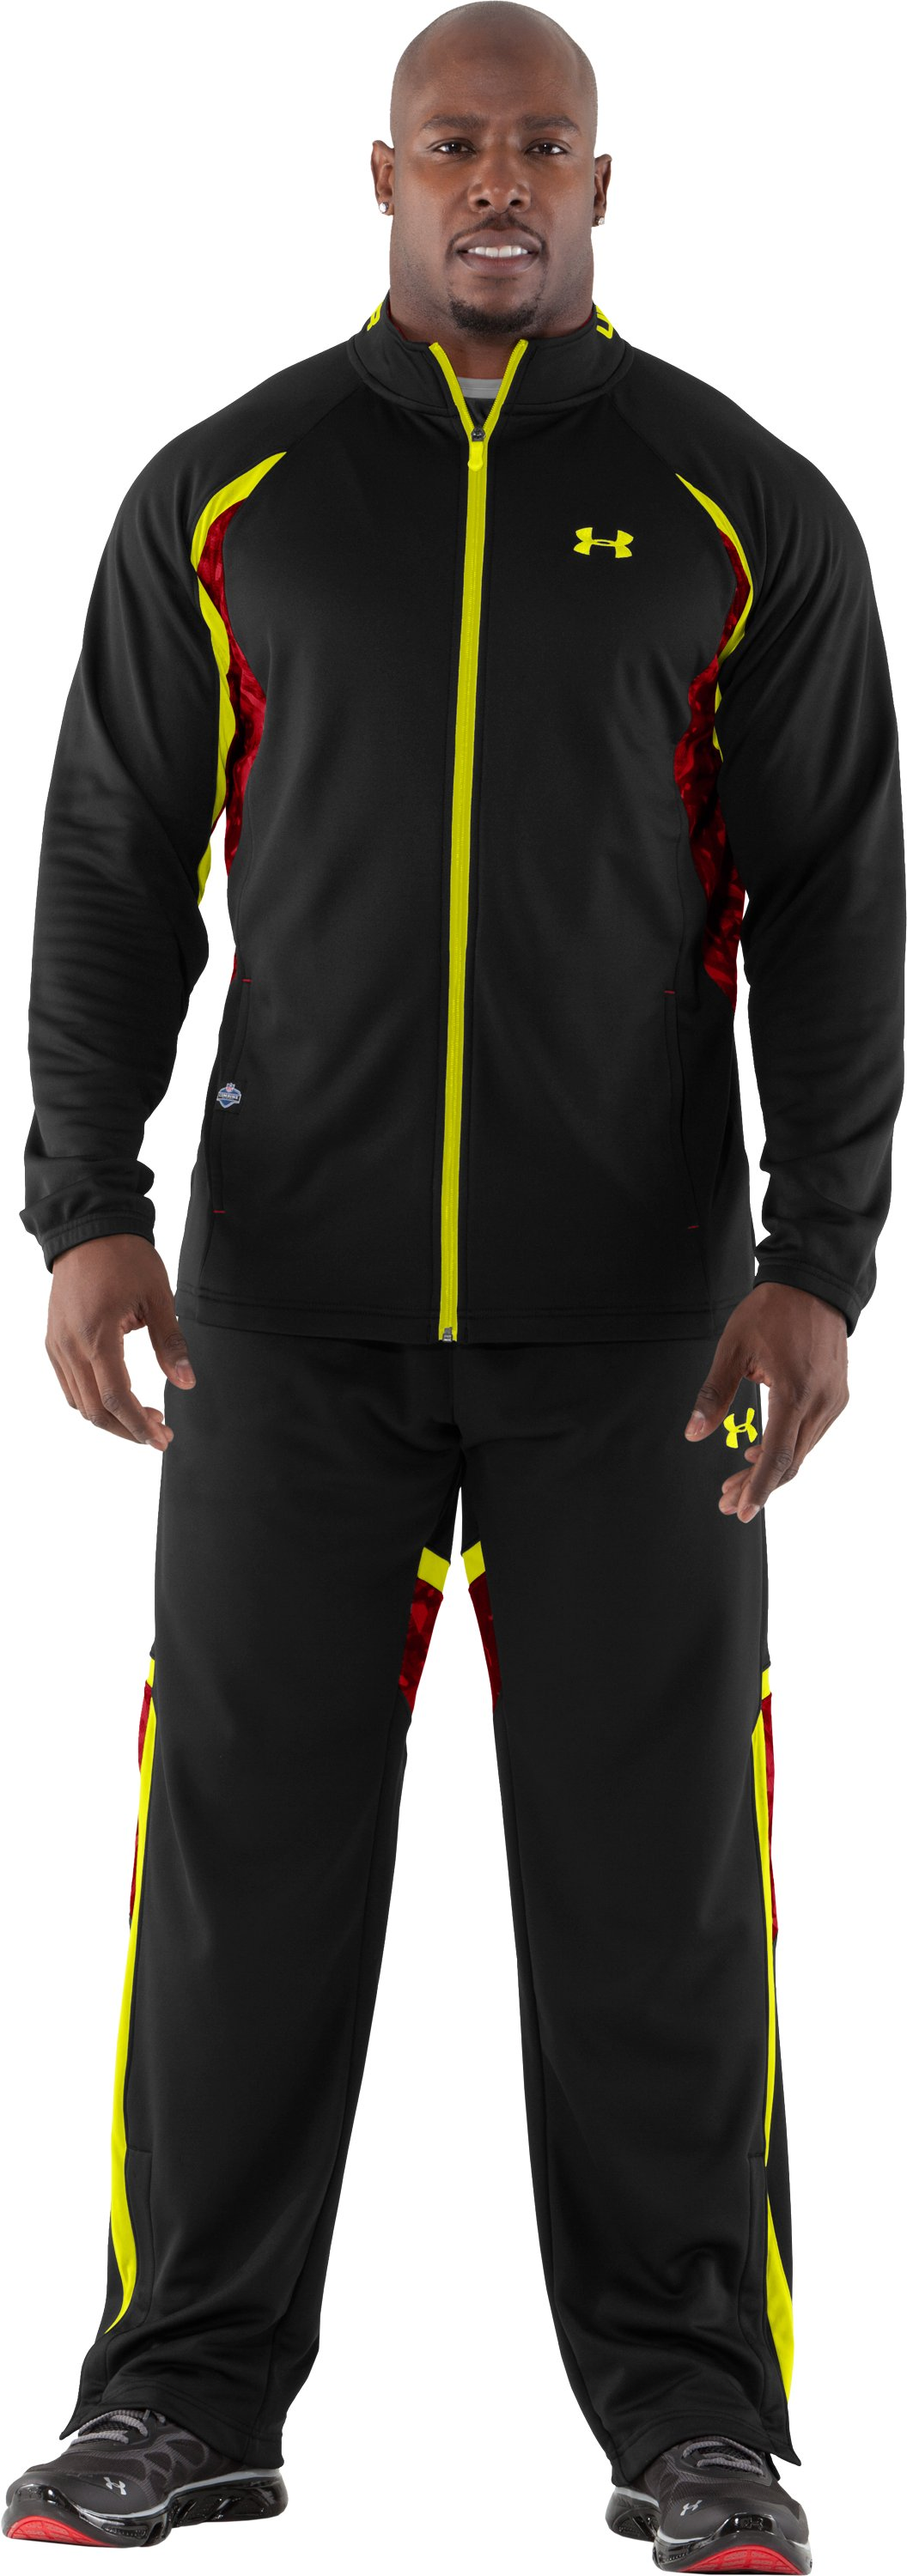 Men's NFL Combine Authentic Warm-Up Jacket, Black , zoomed image